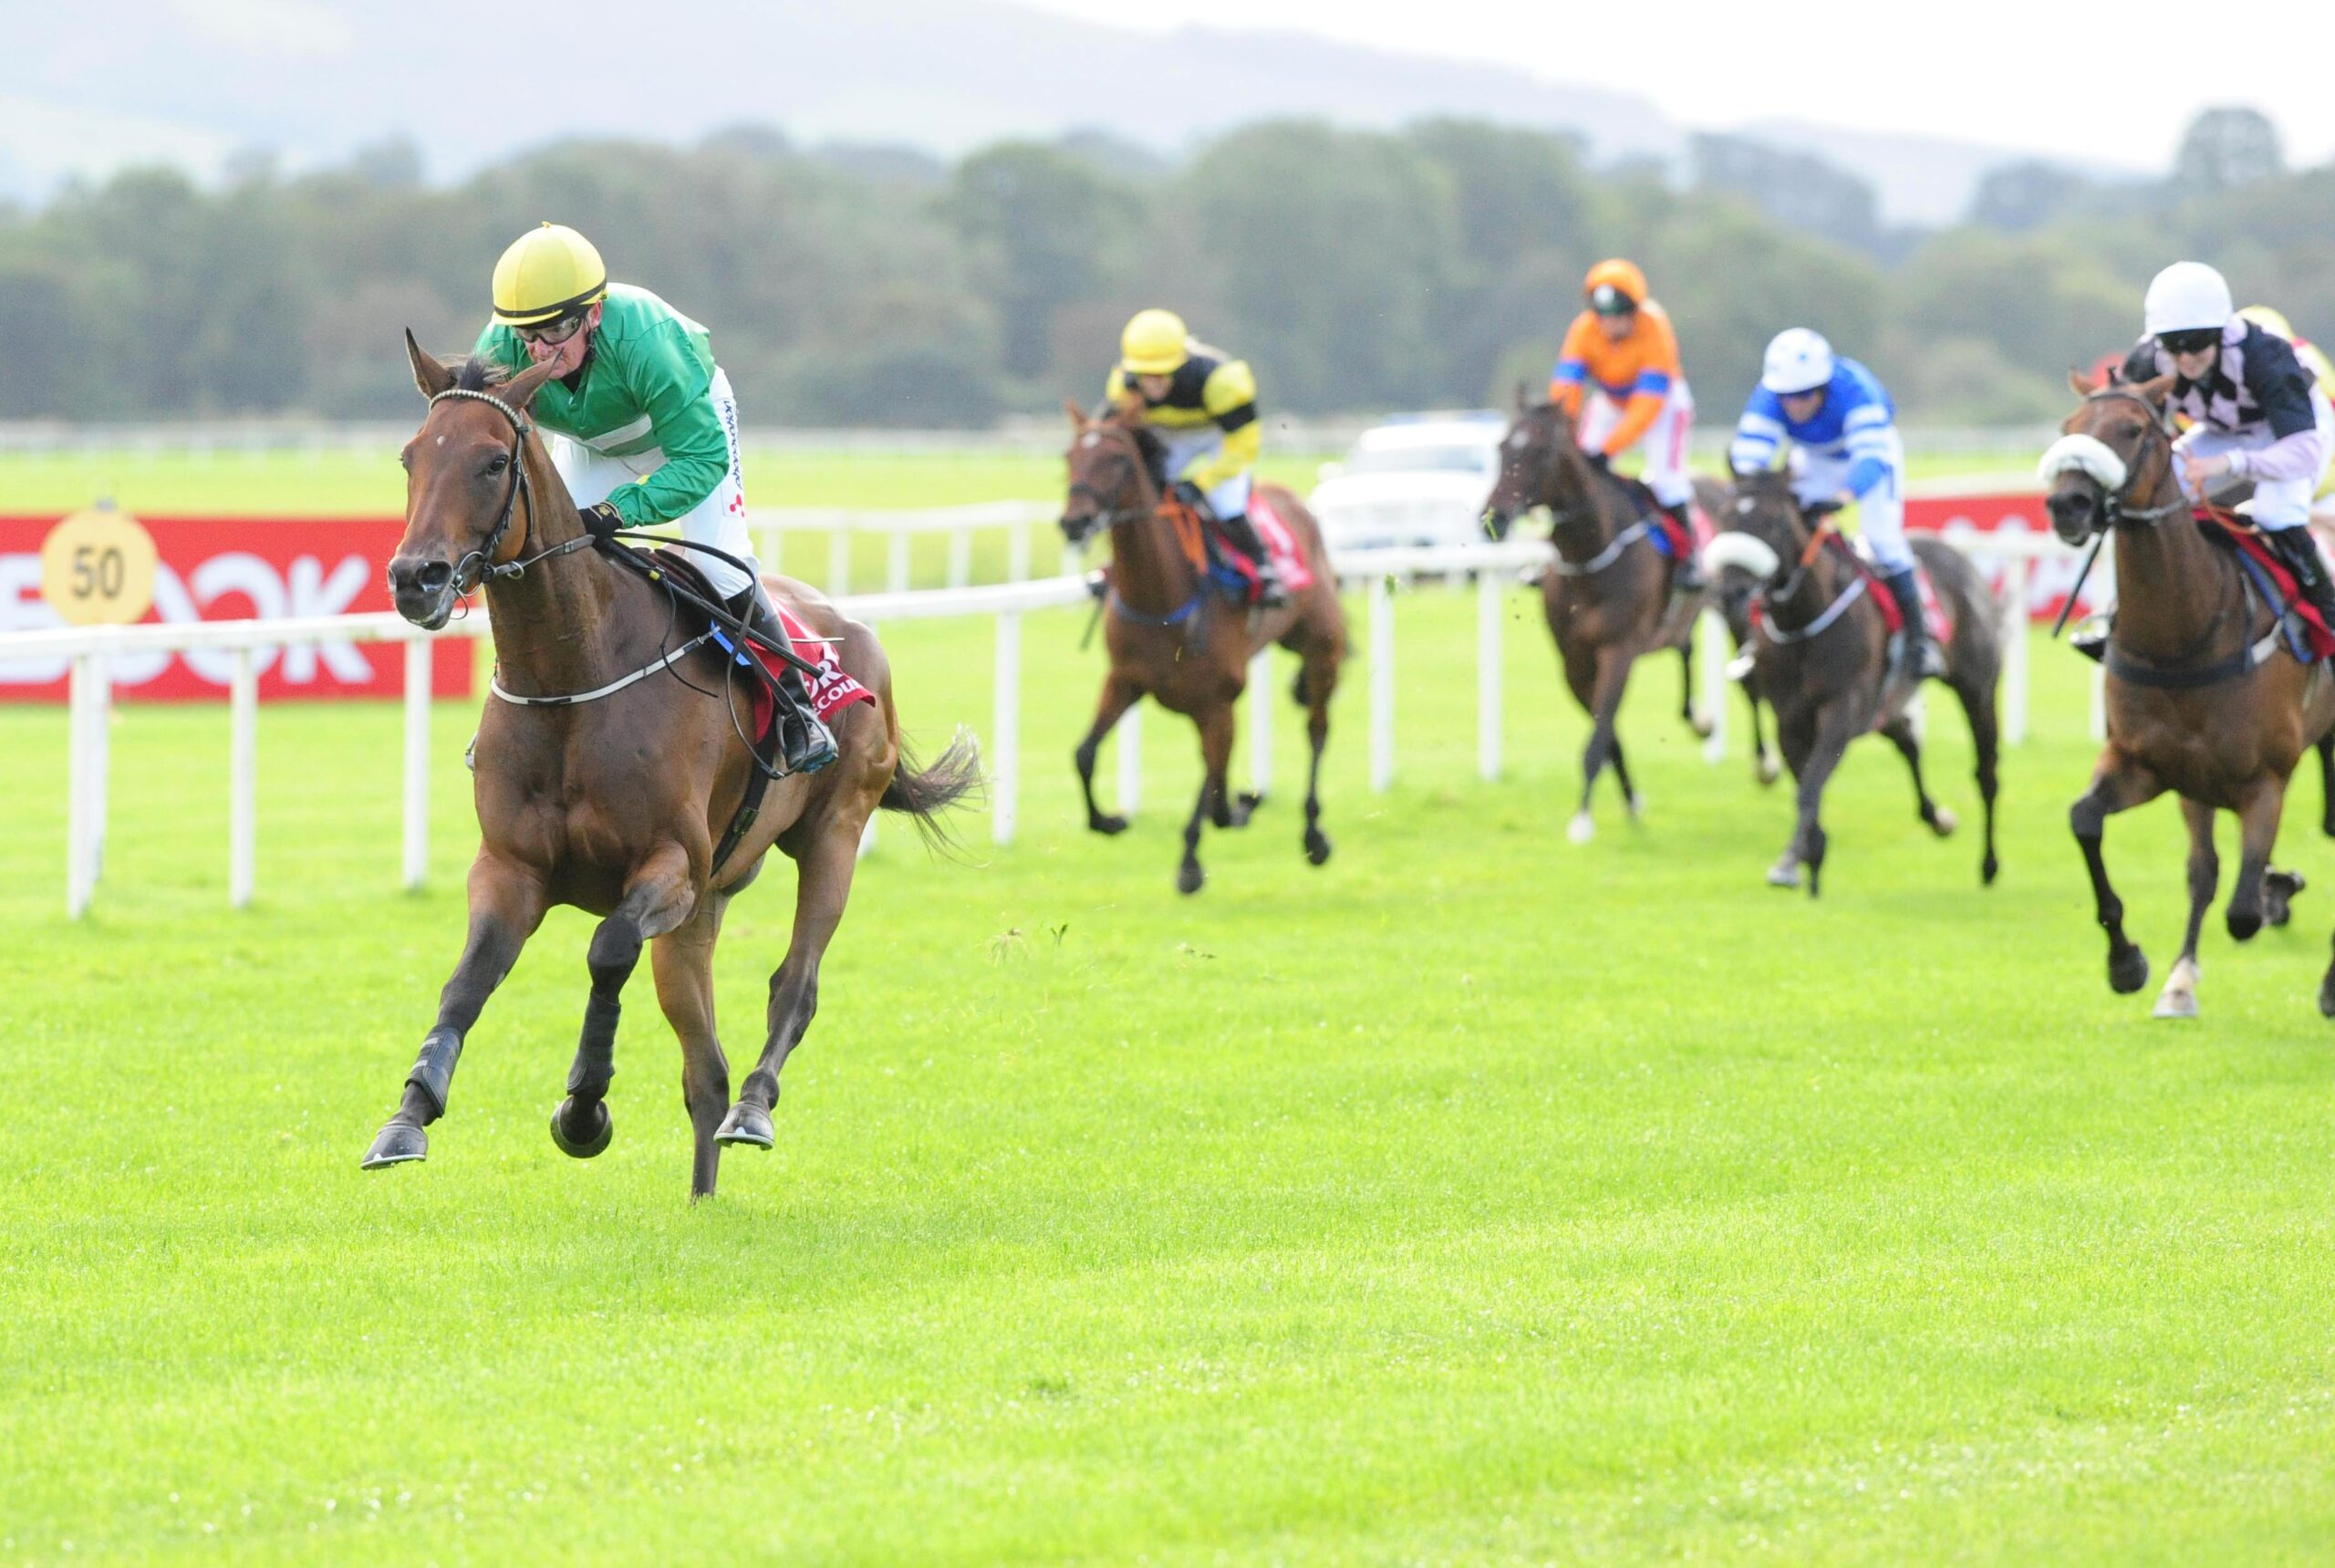 Paddy Woods wins the second race of The Corinthian Challenge Charity Race Series